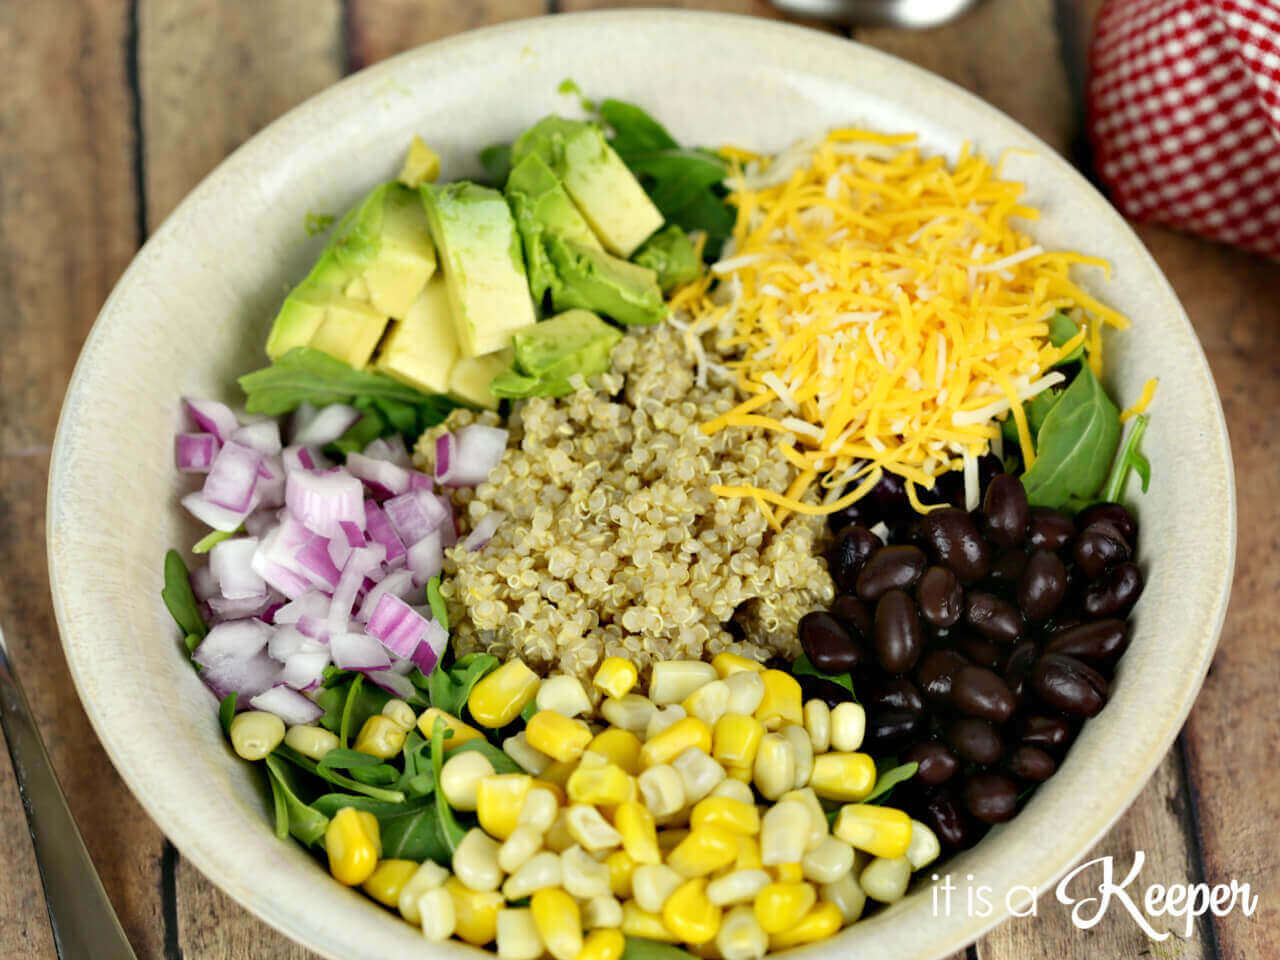 , this quinoa bowl was set up like a salad bar. We each took a bowl ...